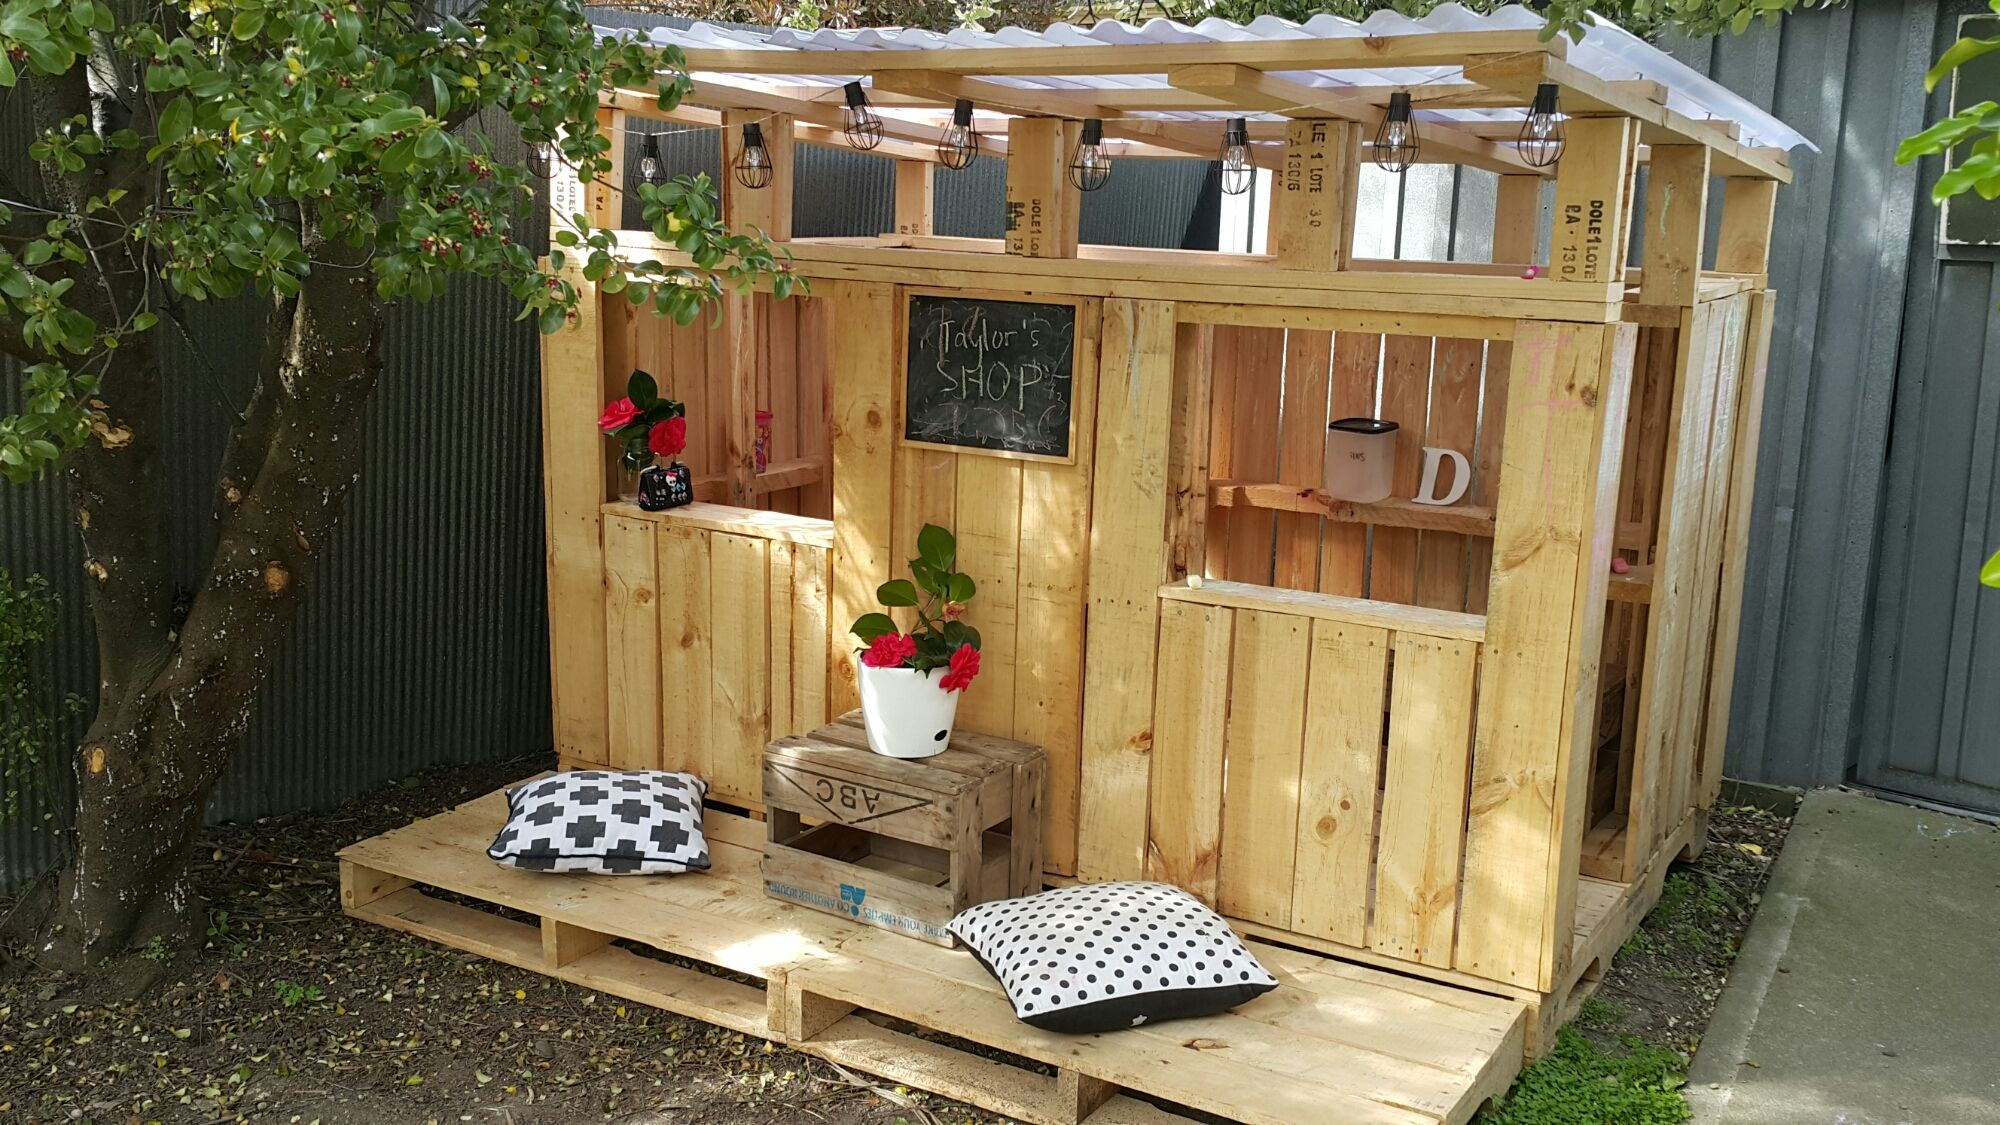 our d.i.y pallet playhouse - simplicity + me | playhouse | pinterest